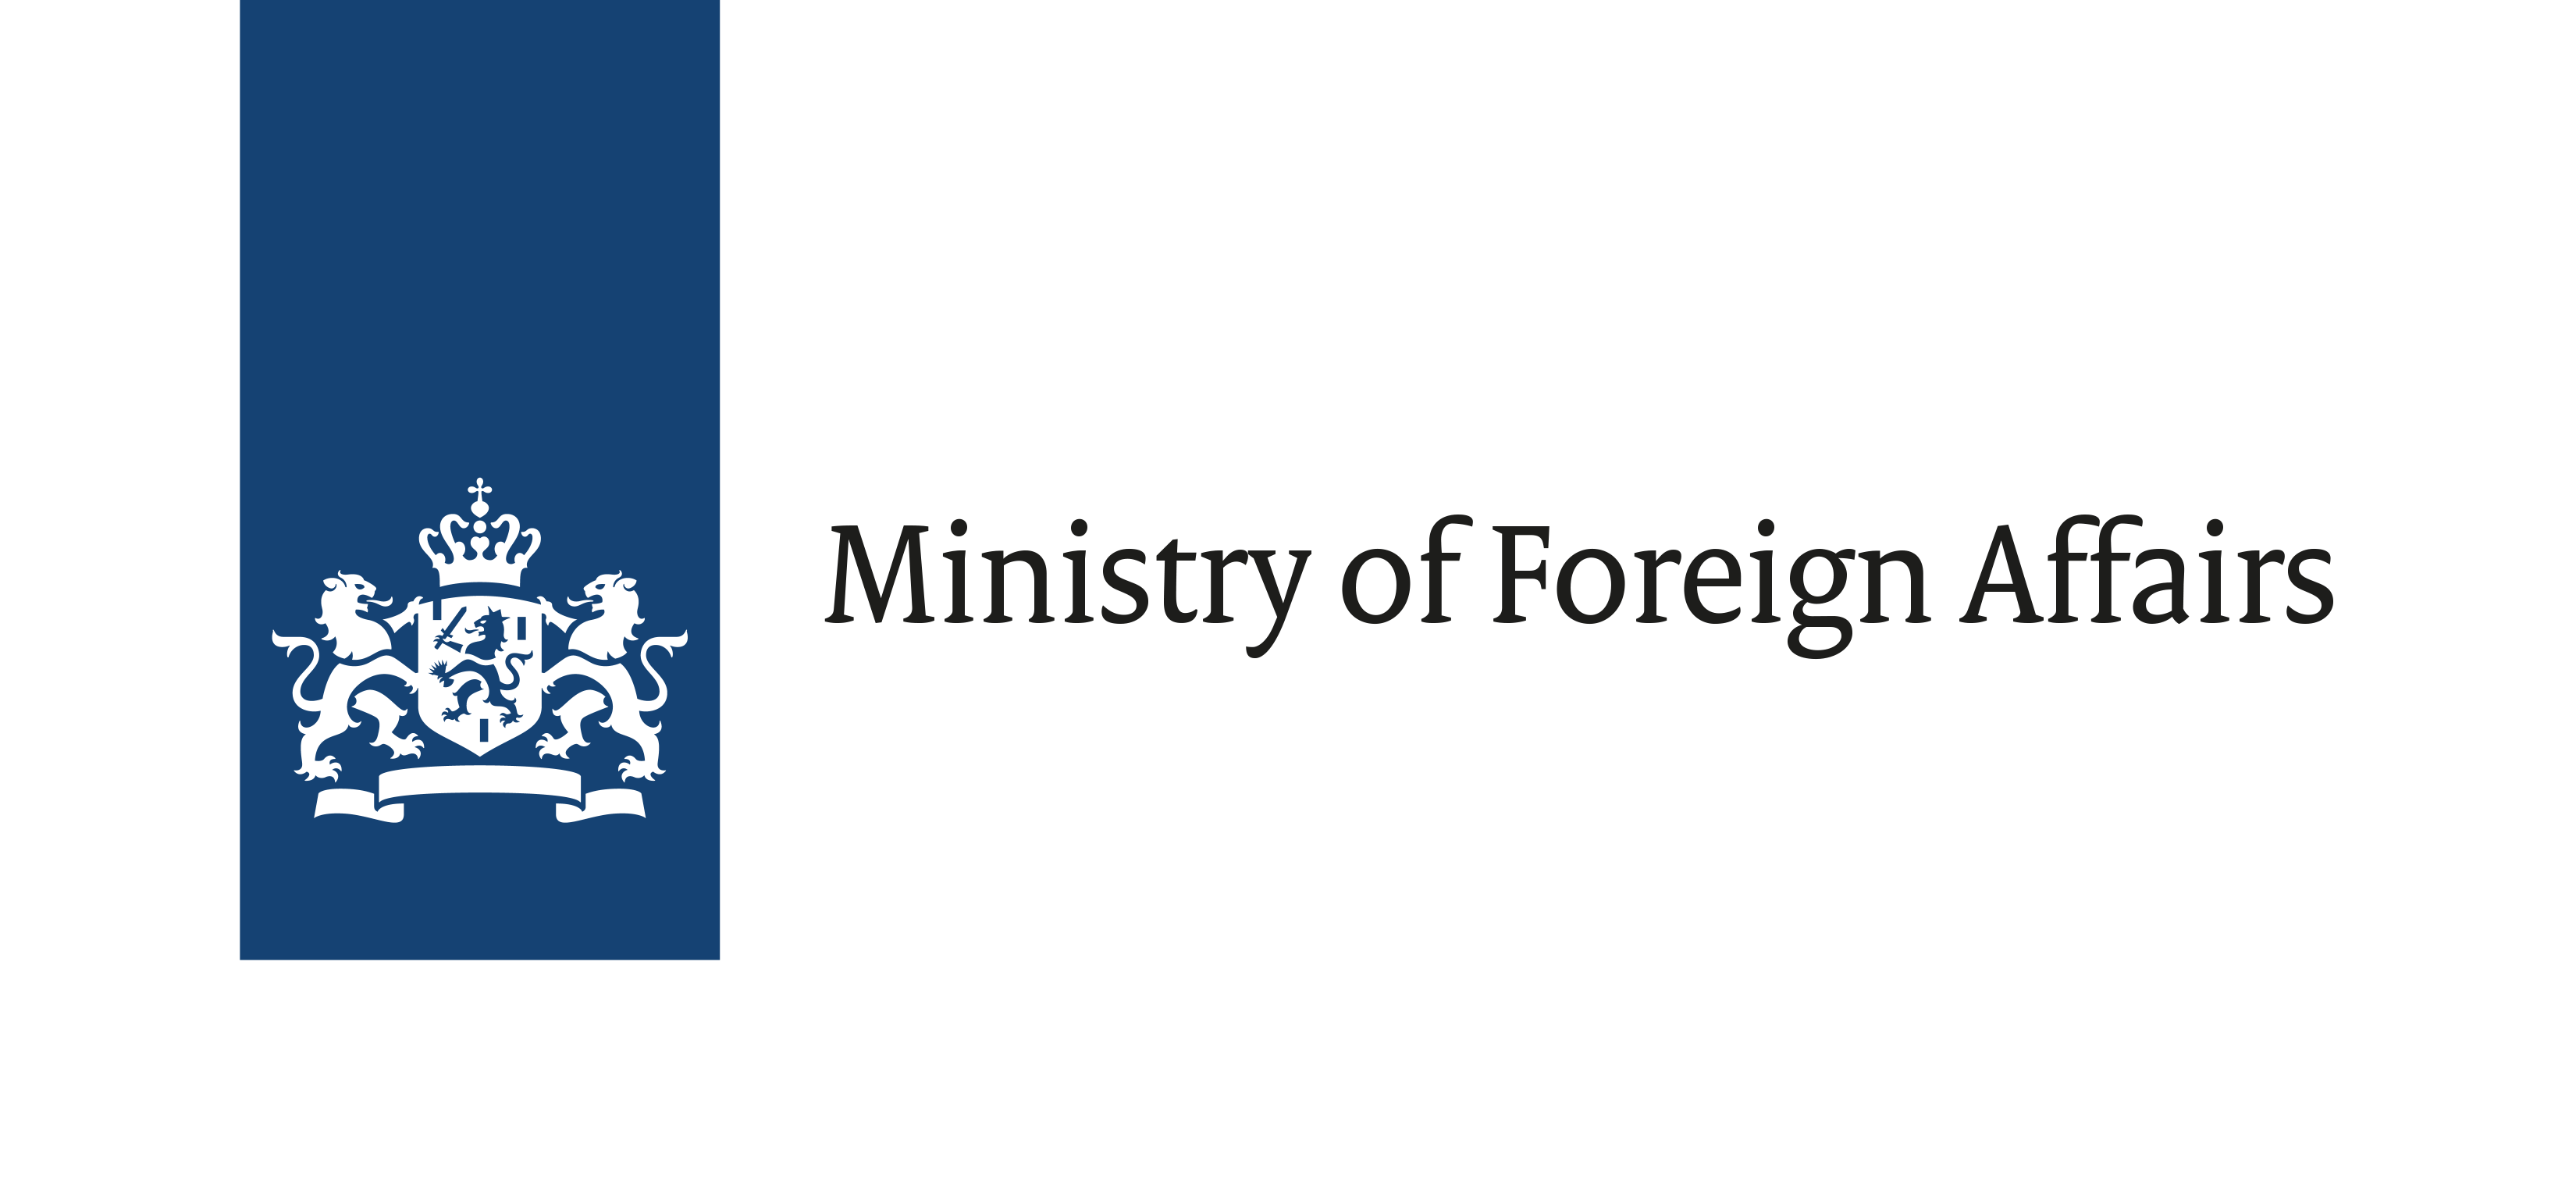 Ministry of Foreign Affairs of the Kingdom of the Netherlands